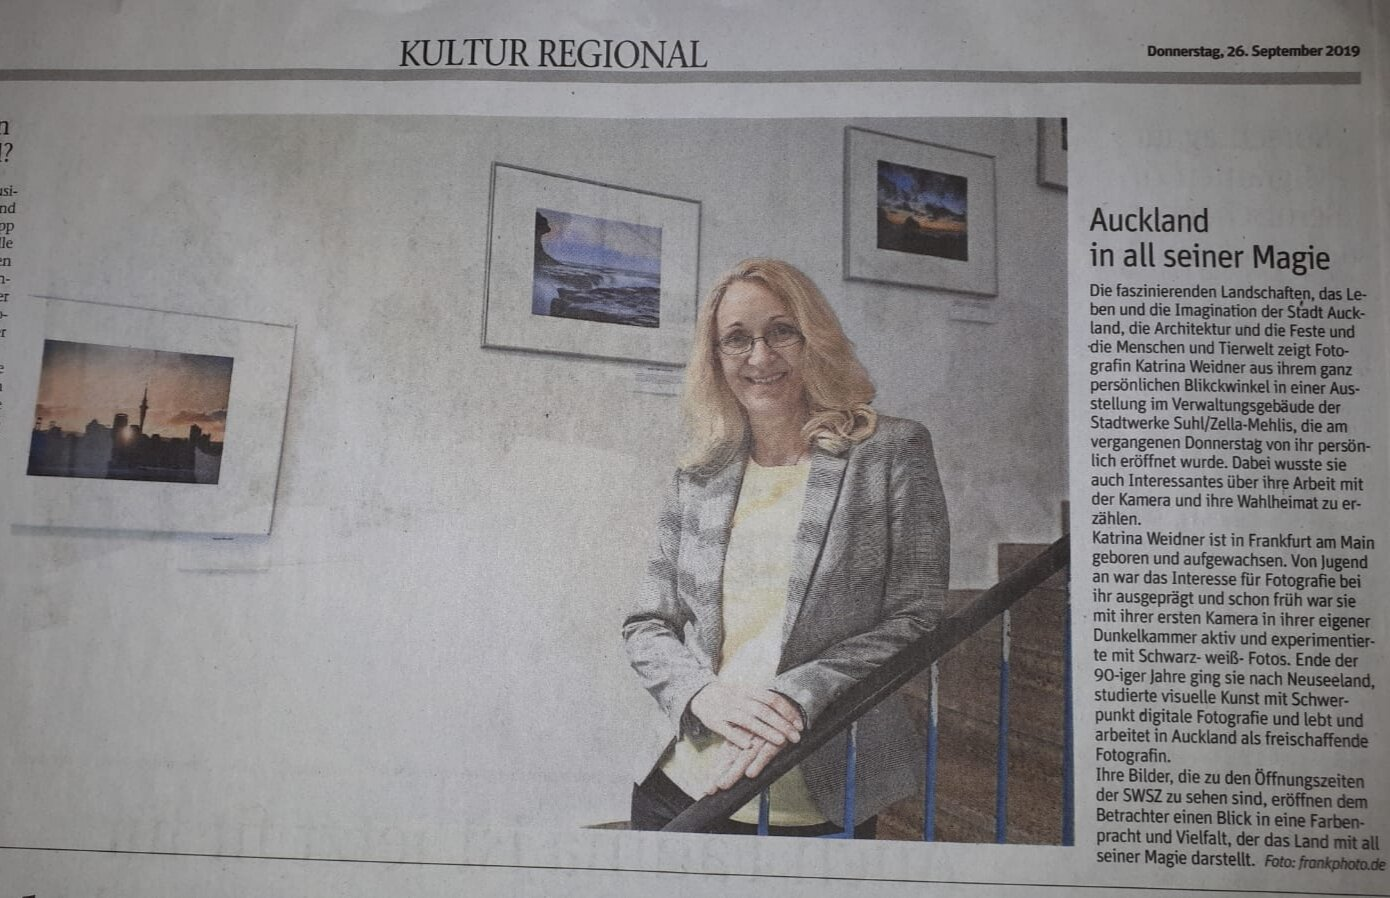 Local coverage of the exhibition.